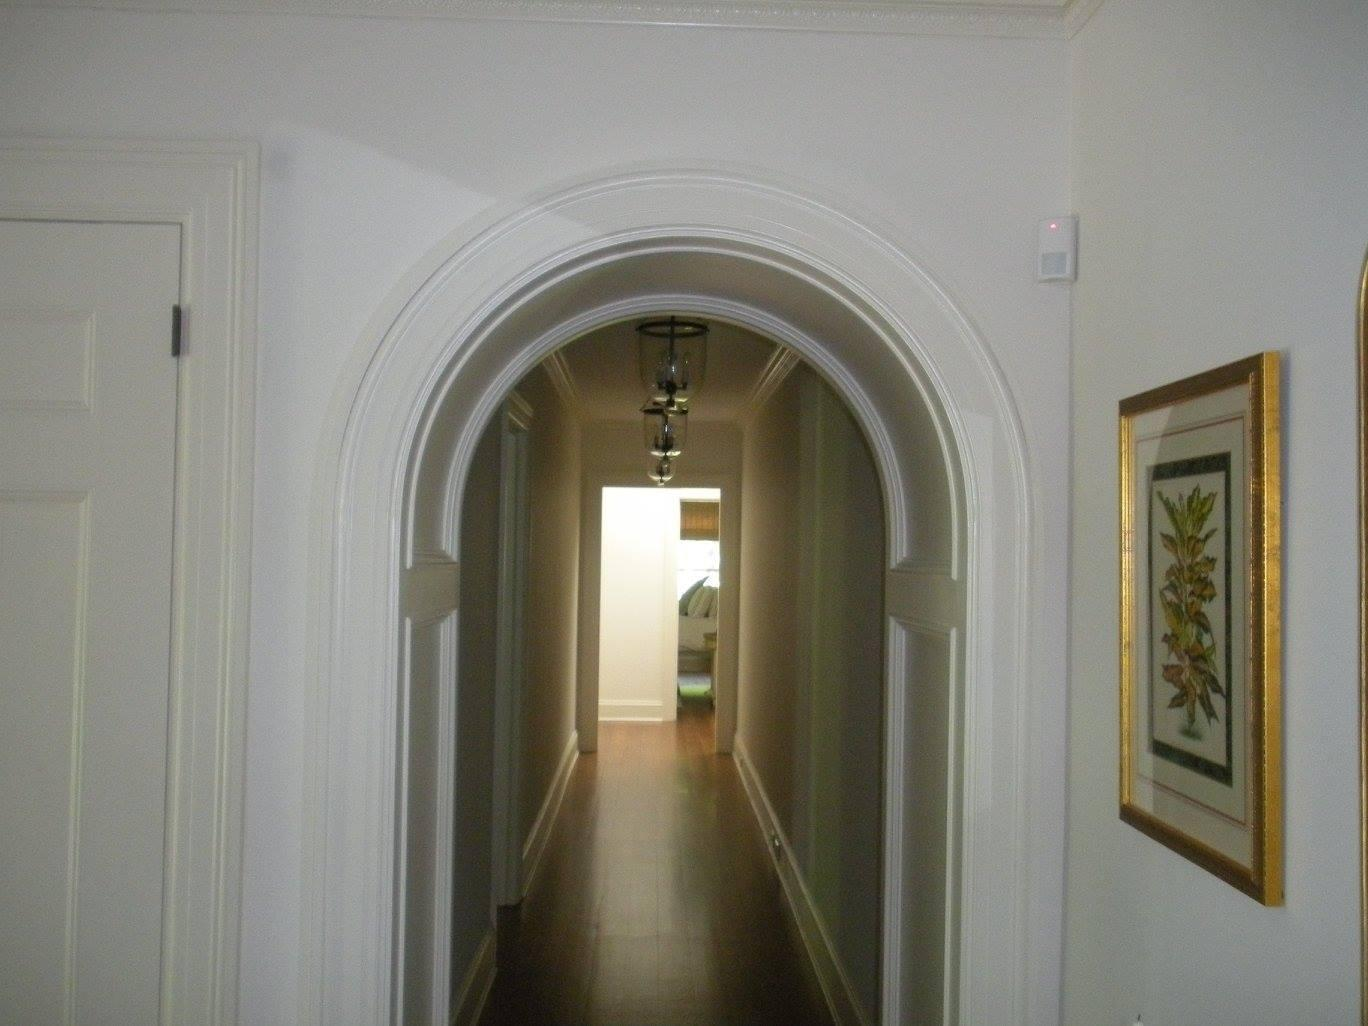 Hallway with Arched Entrance